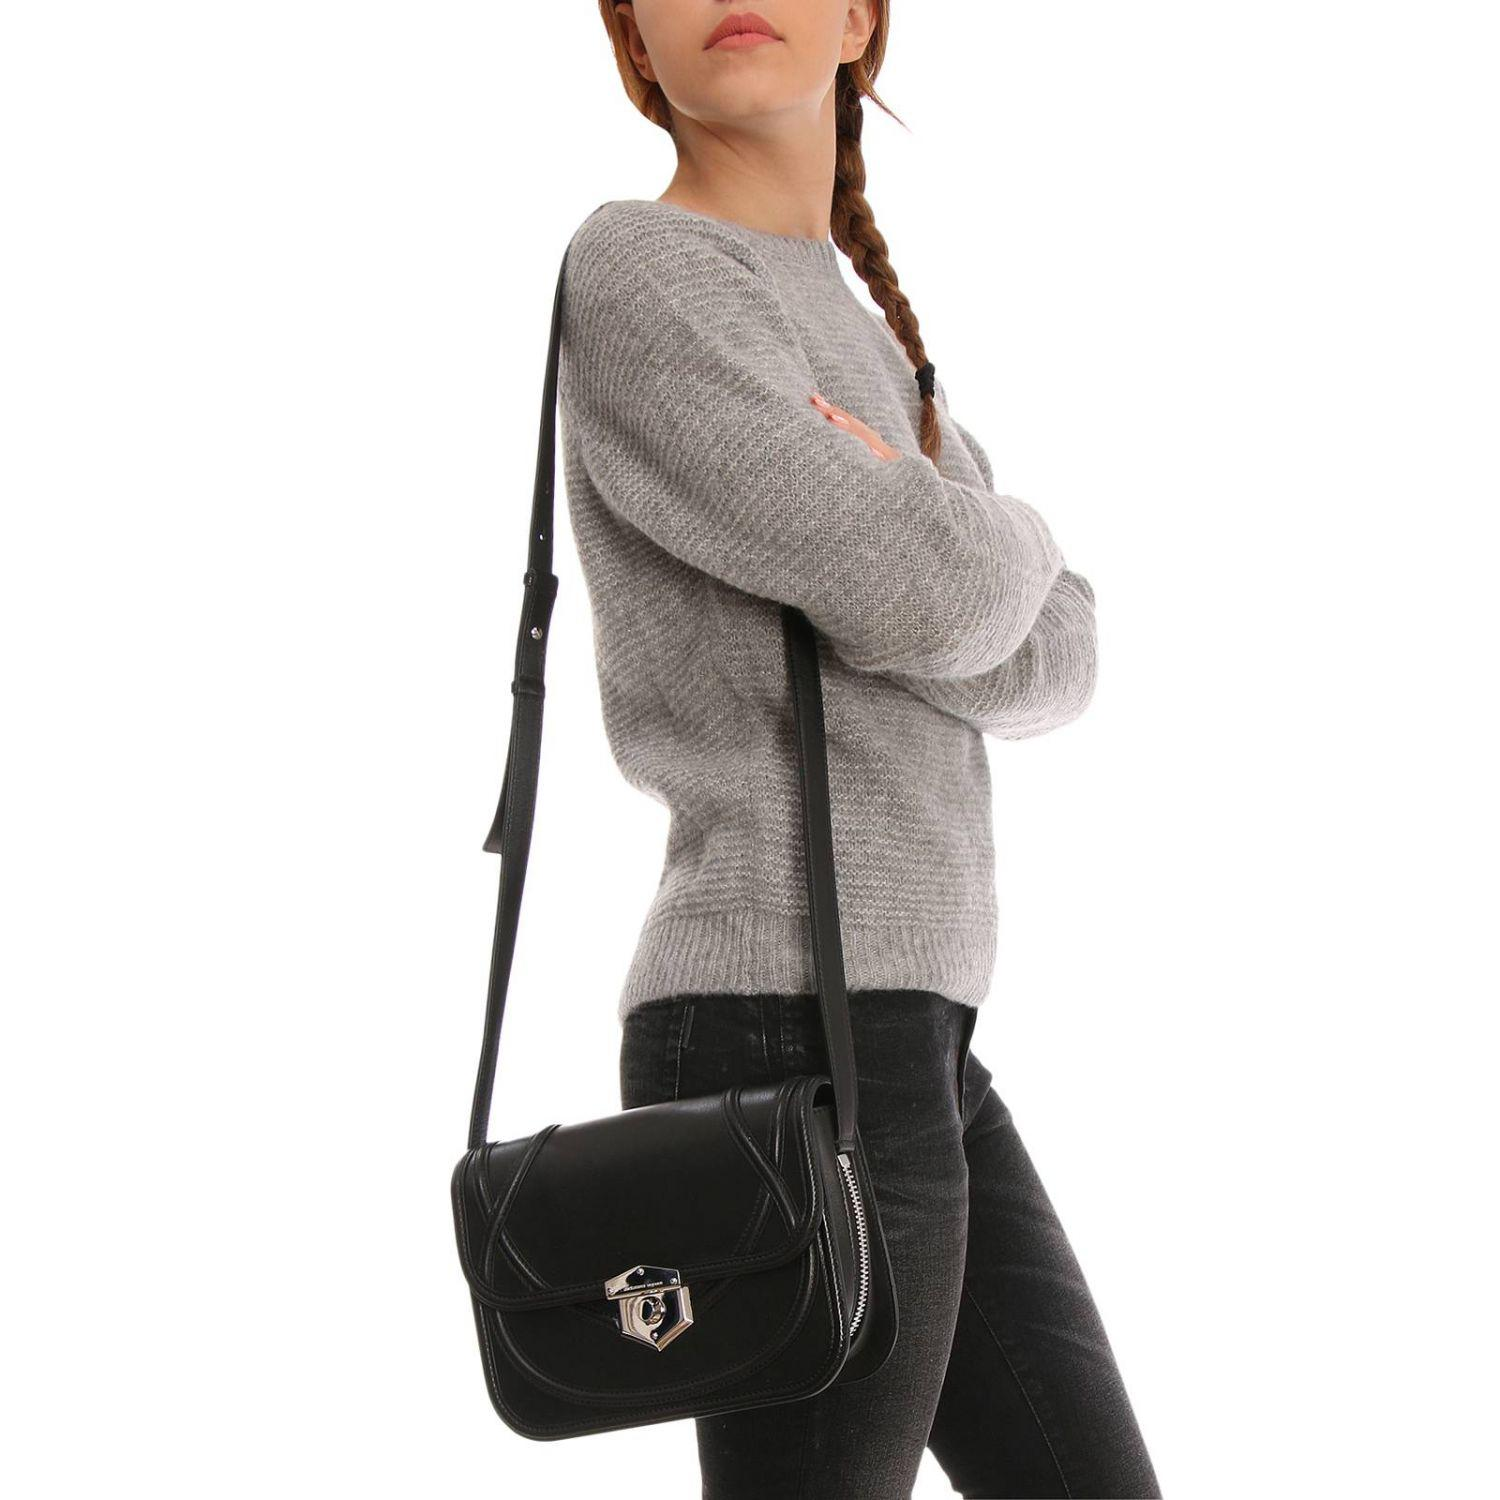 Alexander McQueen Leather Small Wicca Bag in Black